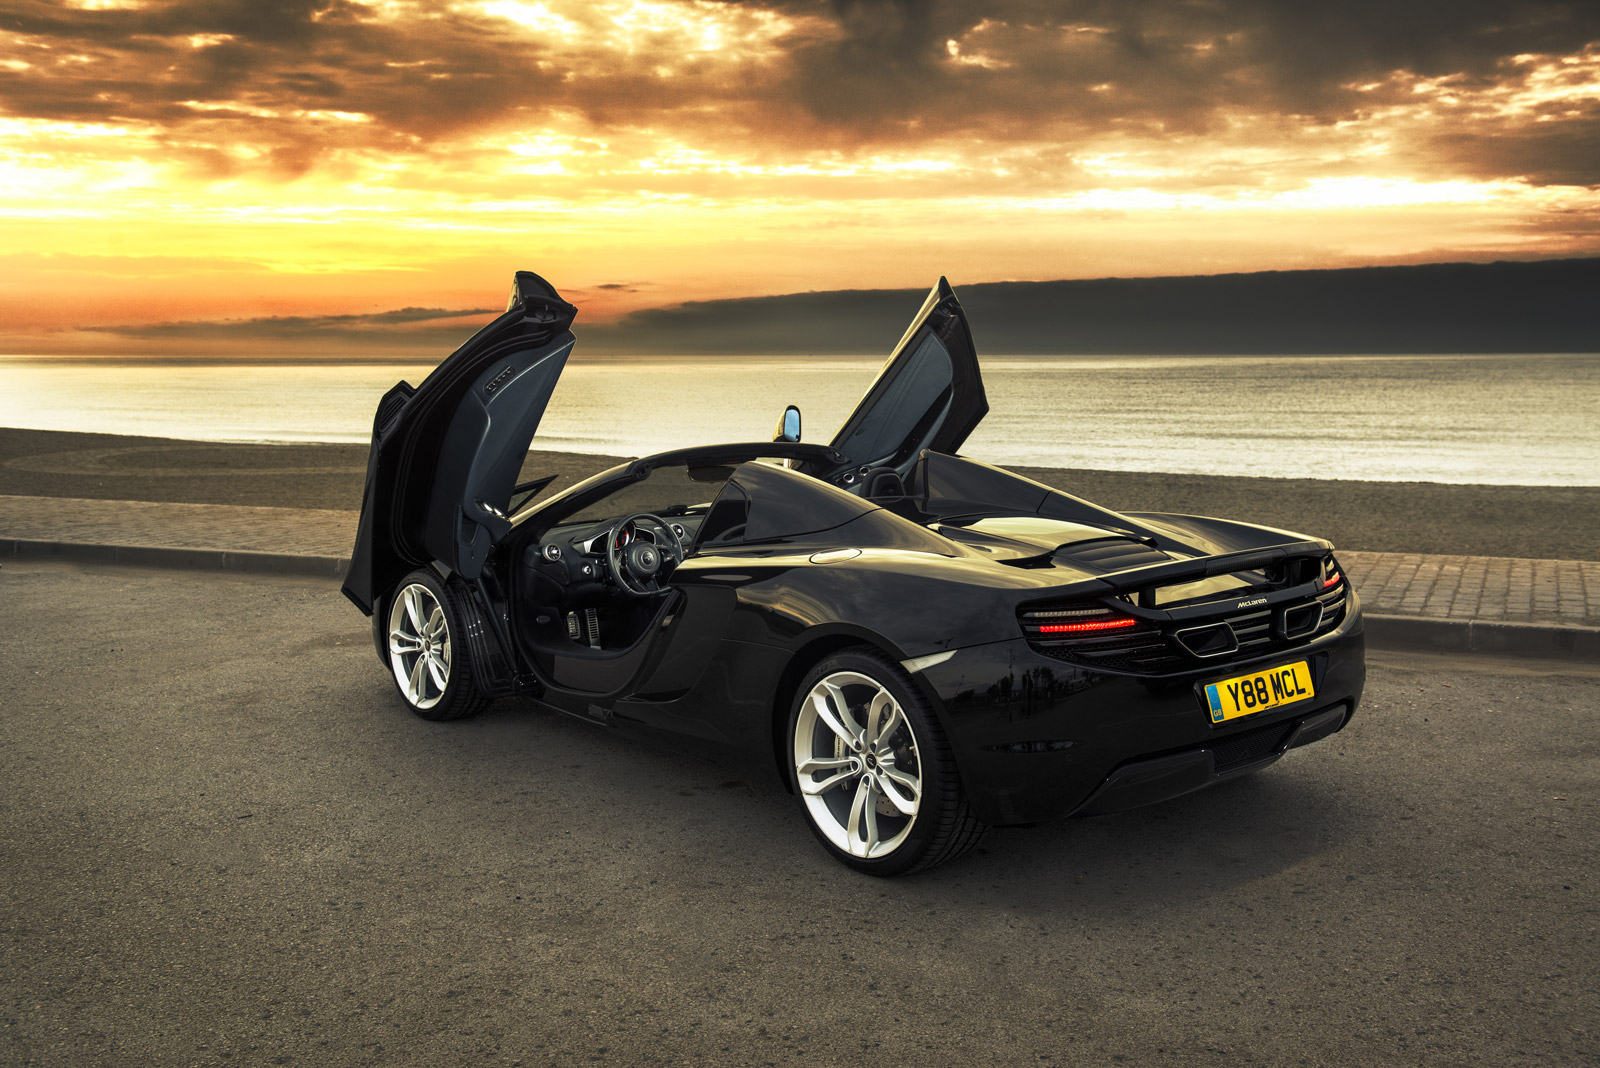 McLaren Automotive To Post Loss In 2012, But Sees Profit In 2013